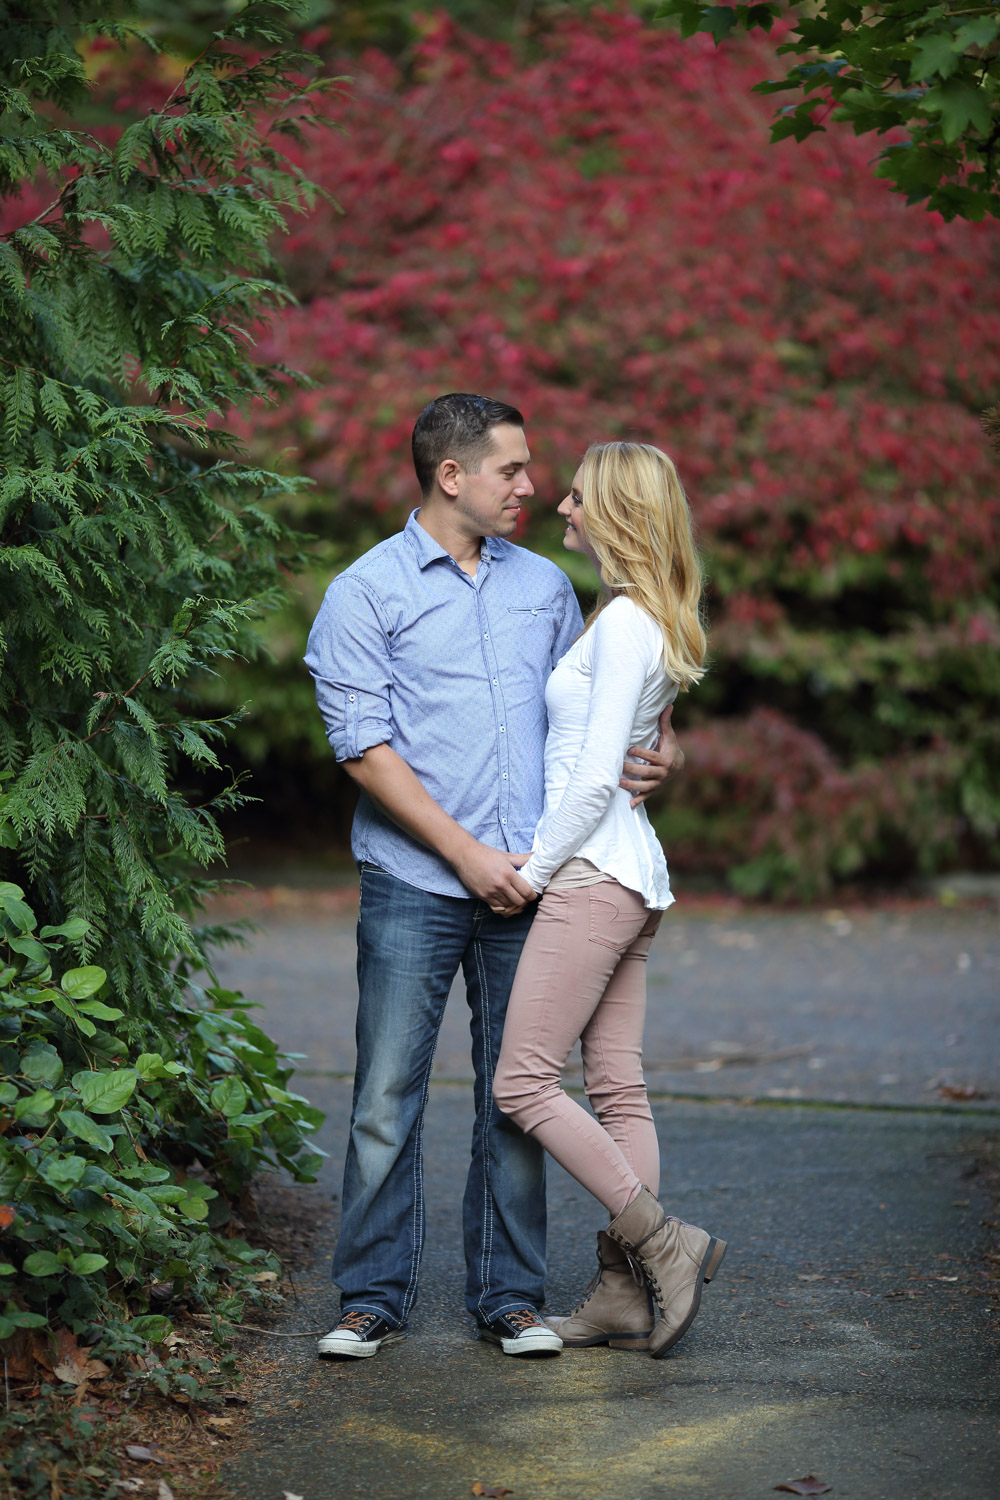 Engagement Photos Whatcom Falls Bellingham, WA01.jpg